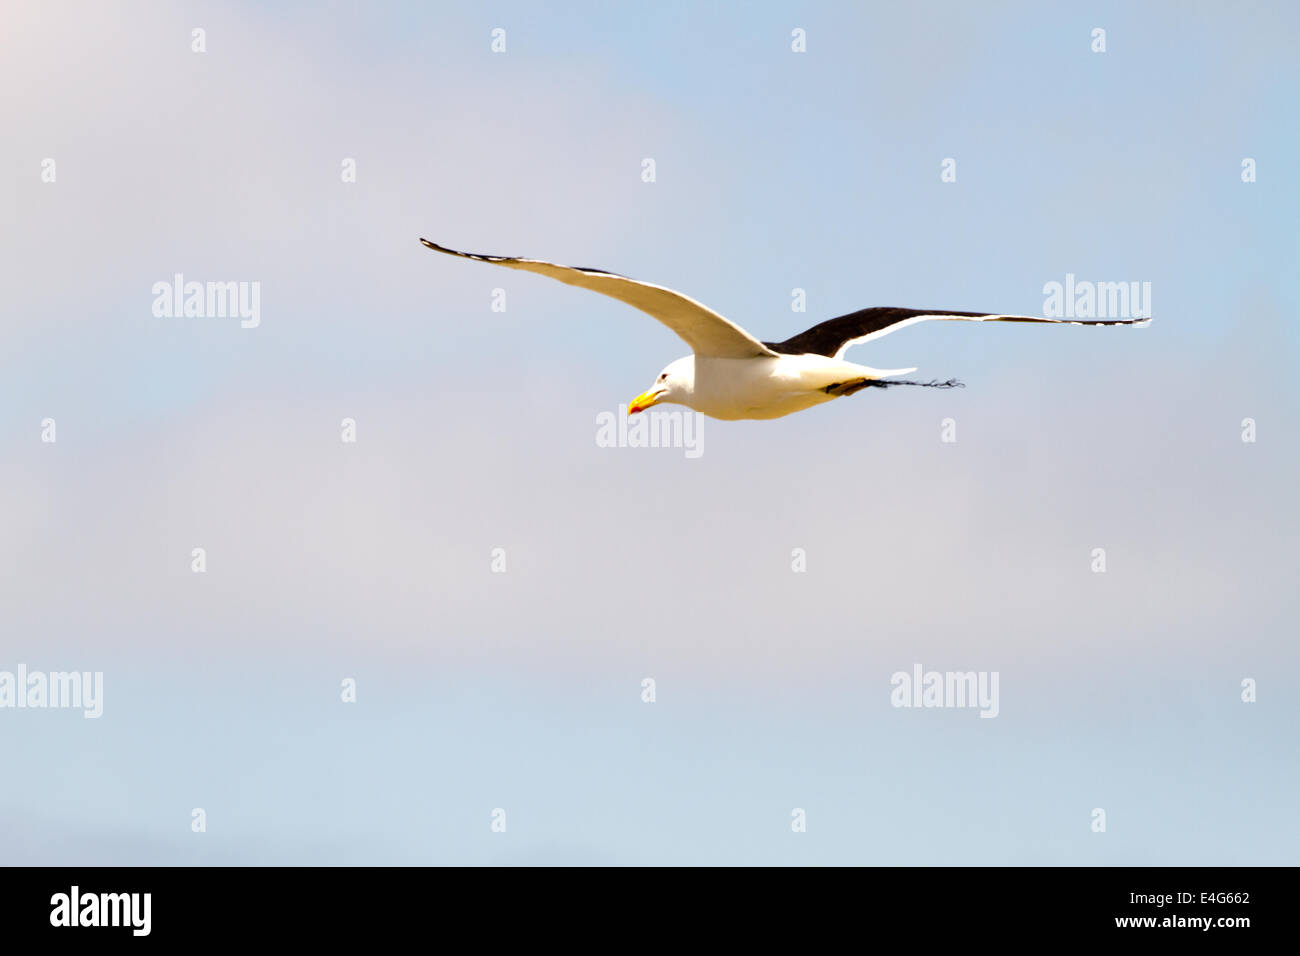 Bird in flight at Punta de Choros, Isla Damas, La Serena, Chile. 2013, Nov 02/03 Stock Photo